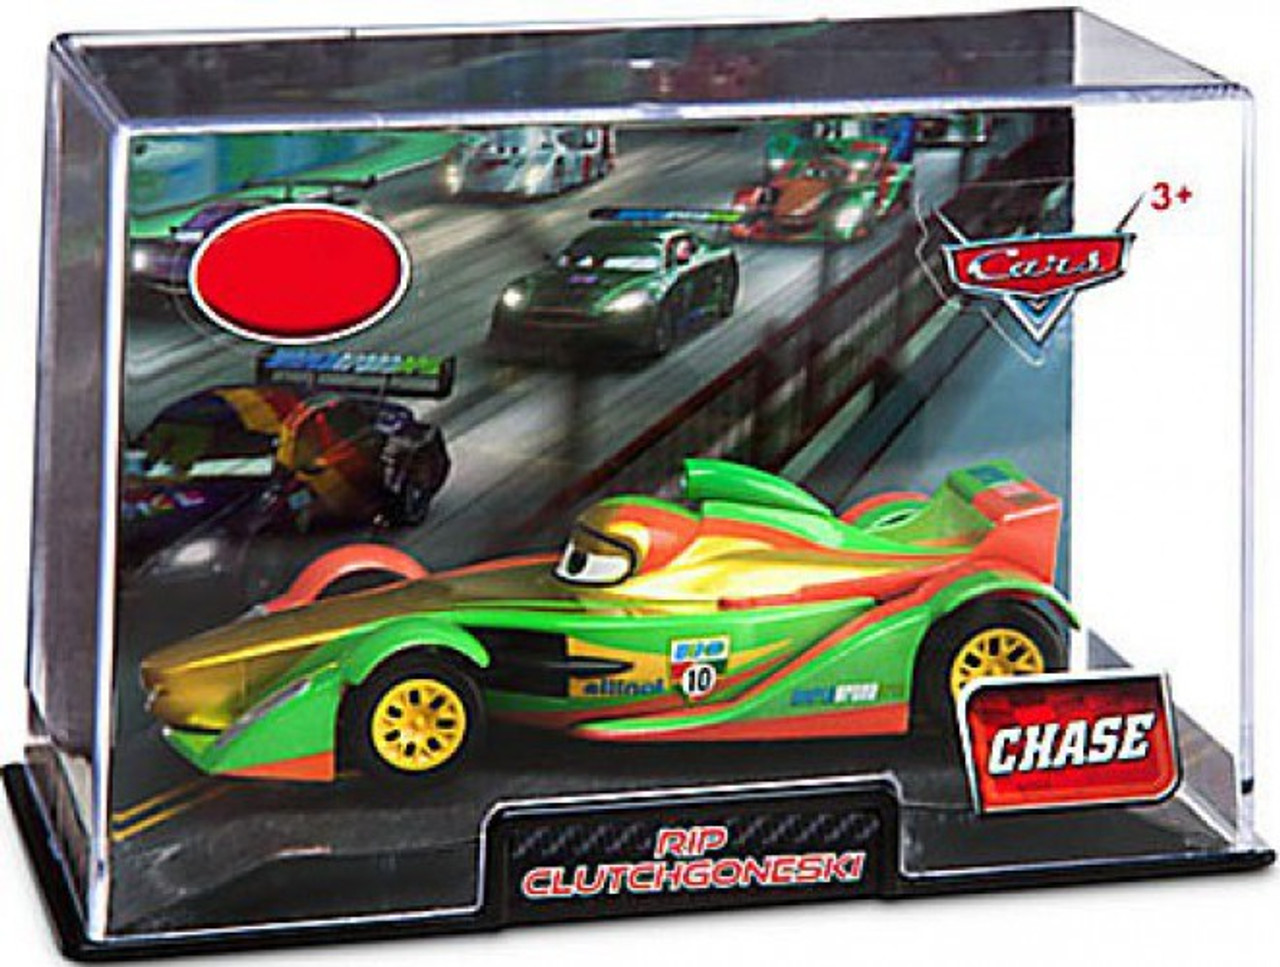 Disney Pixar Cars 2 Francesco edition Chase 1:43 Die Cast Collector Case